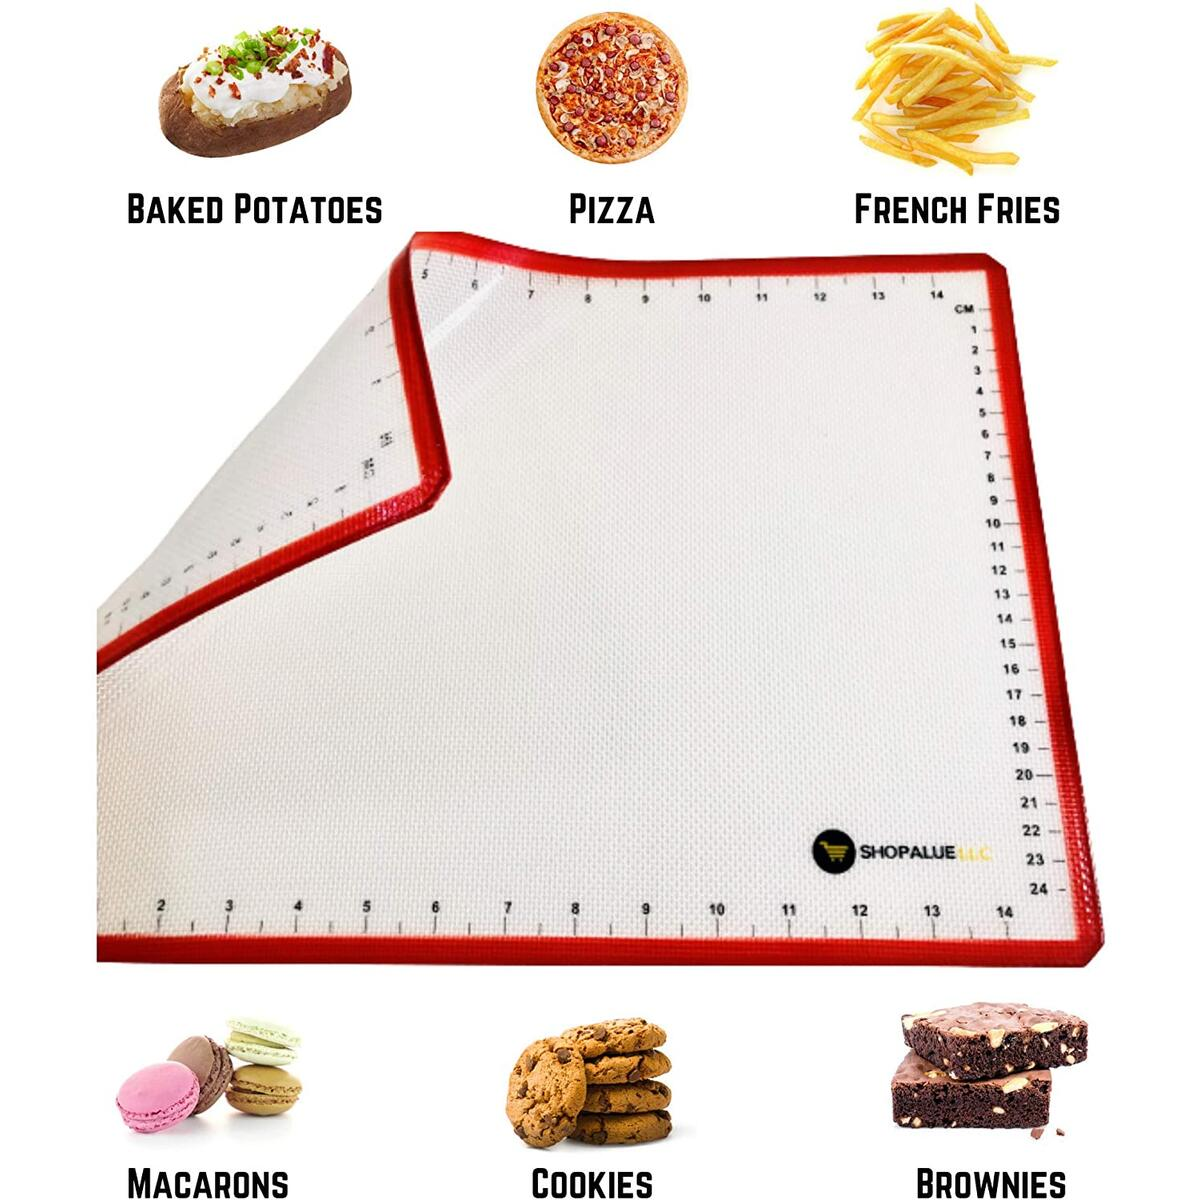 SHOPALUE Silicone Baking Mat with Measurements - Pack of 2 - Macaron Baking Mat Food Safe - Nonstick Pastry Mat for Rolling Out Dough - Kitchen Kneading Mat - Large Size - Reusable Oven Mat